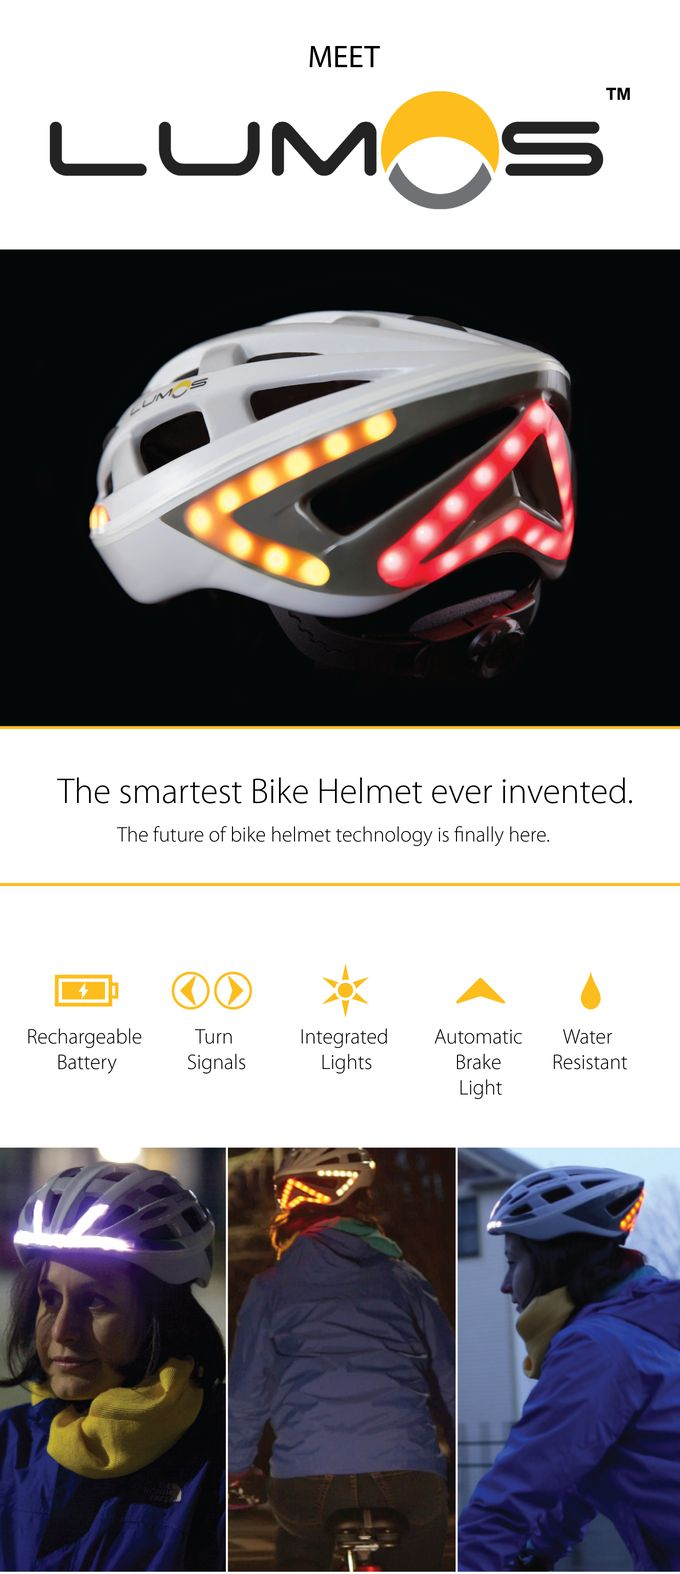 Lumos - A Next Generation Bicycle Helmet by Lumos Helmet — Kickstarter